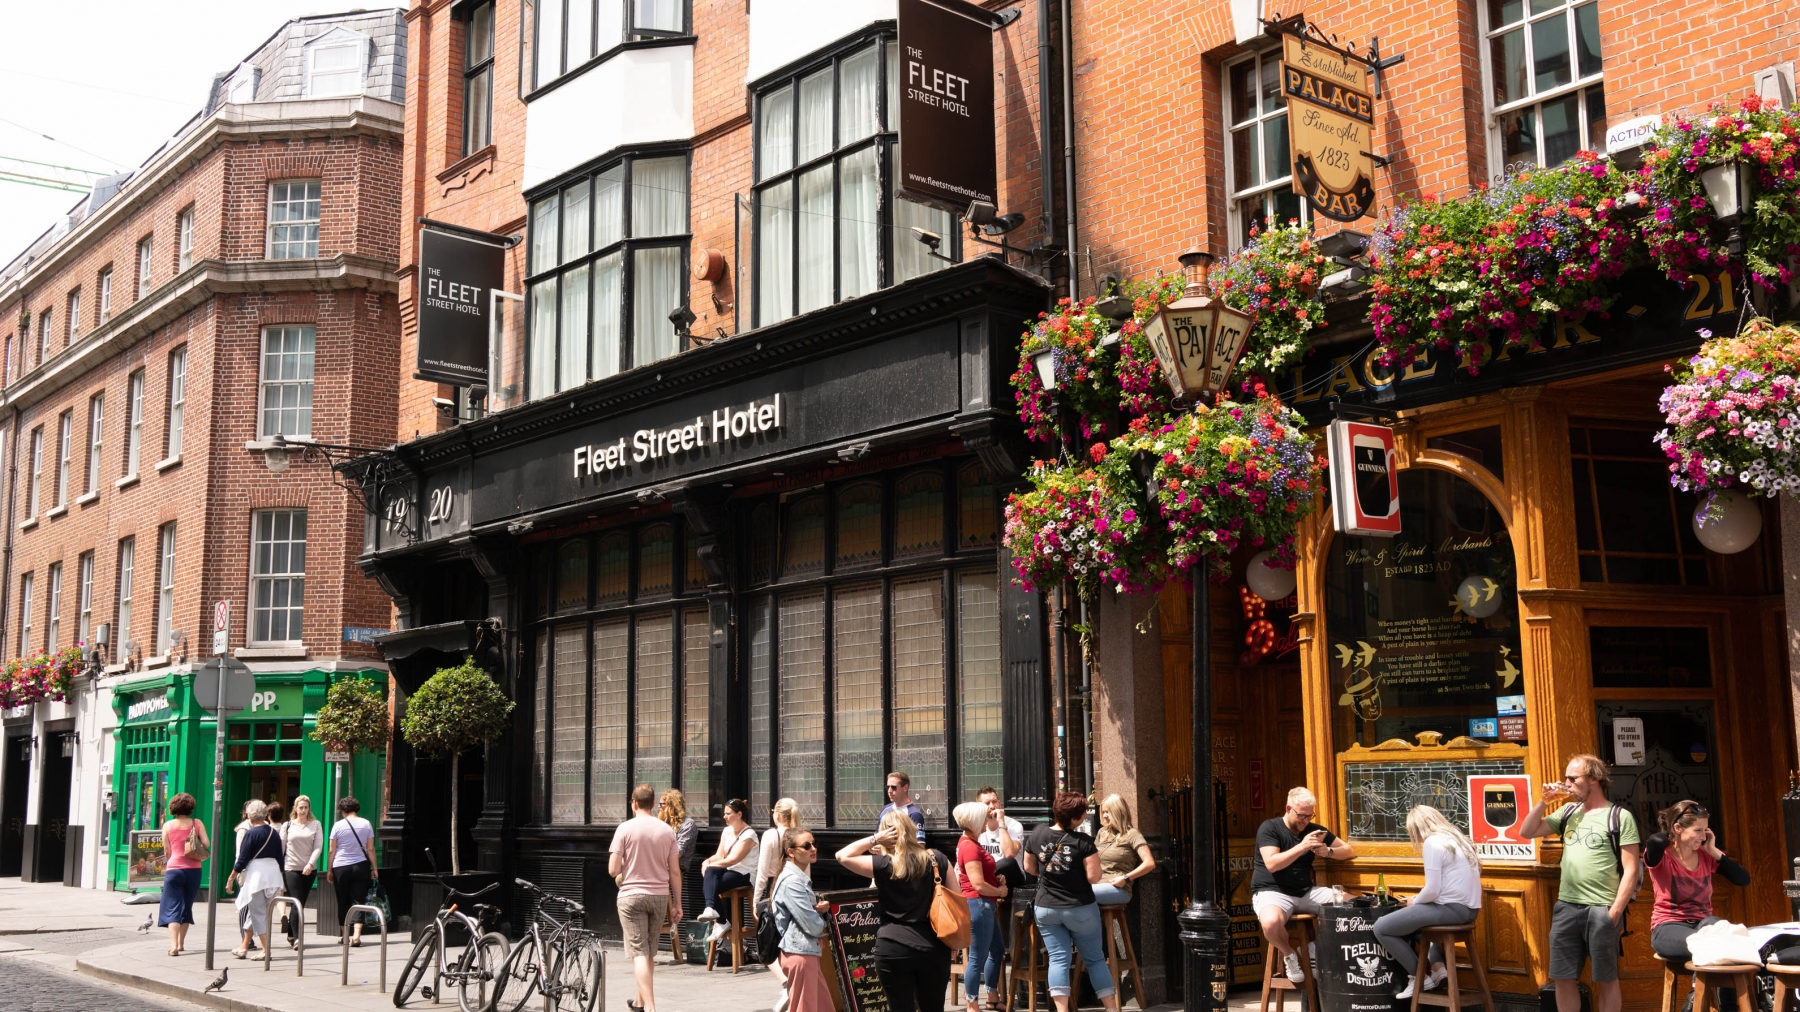 It's more than a bit touristy, but the streets surrounding the Temple Bar area are worth a walk.